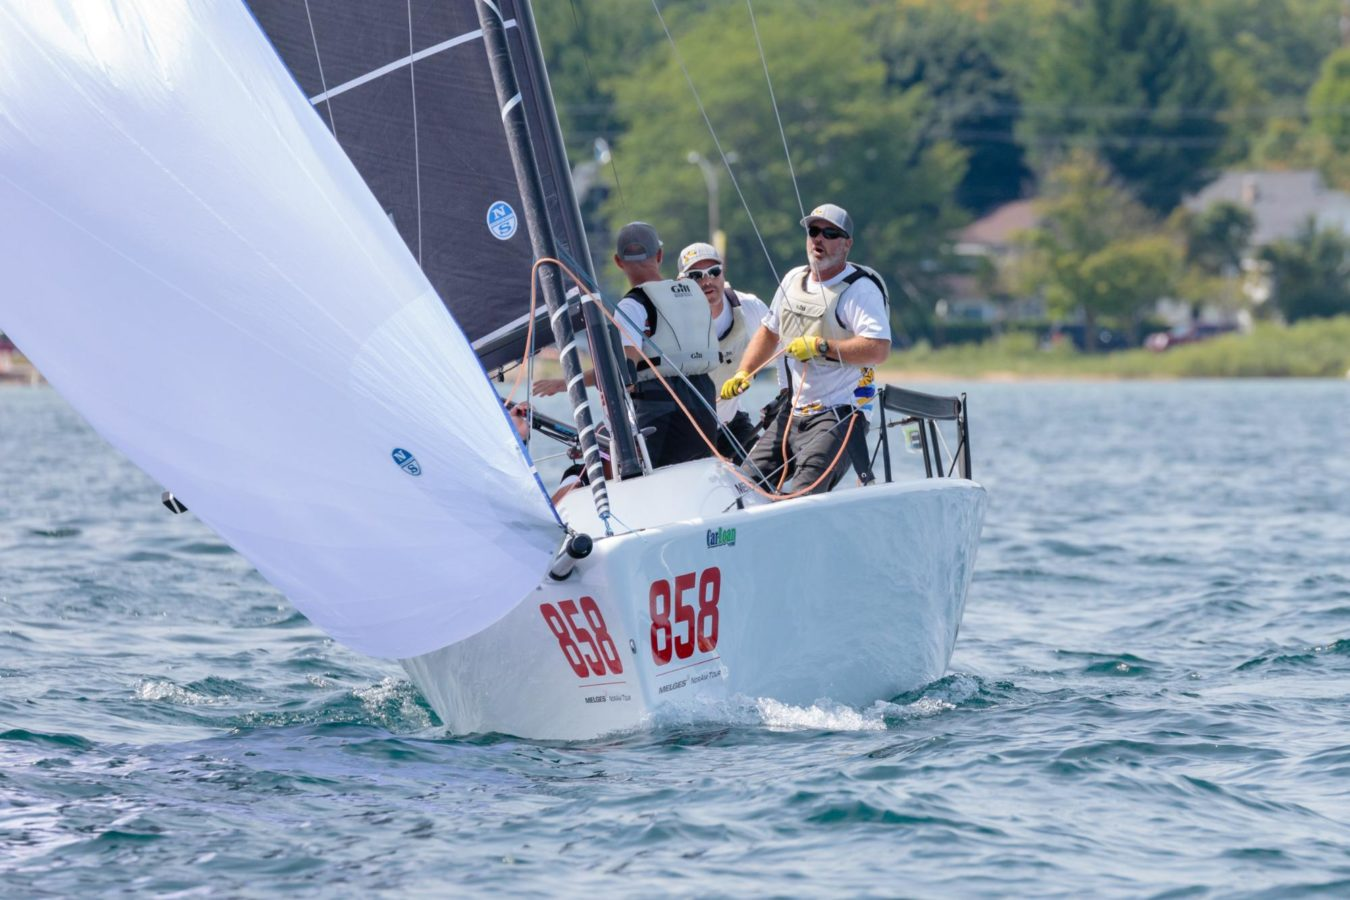 melges 24 sailing downwind